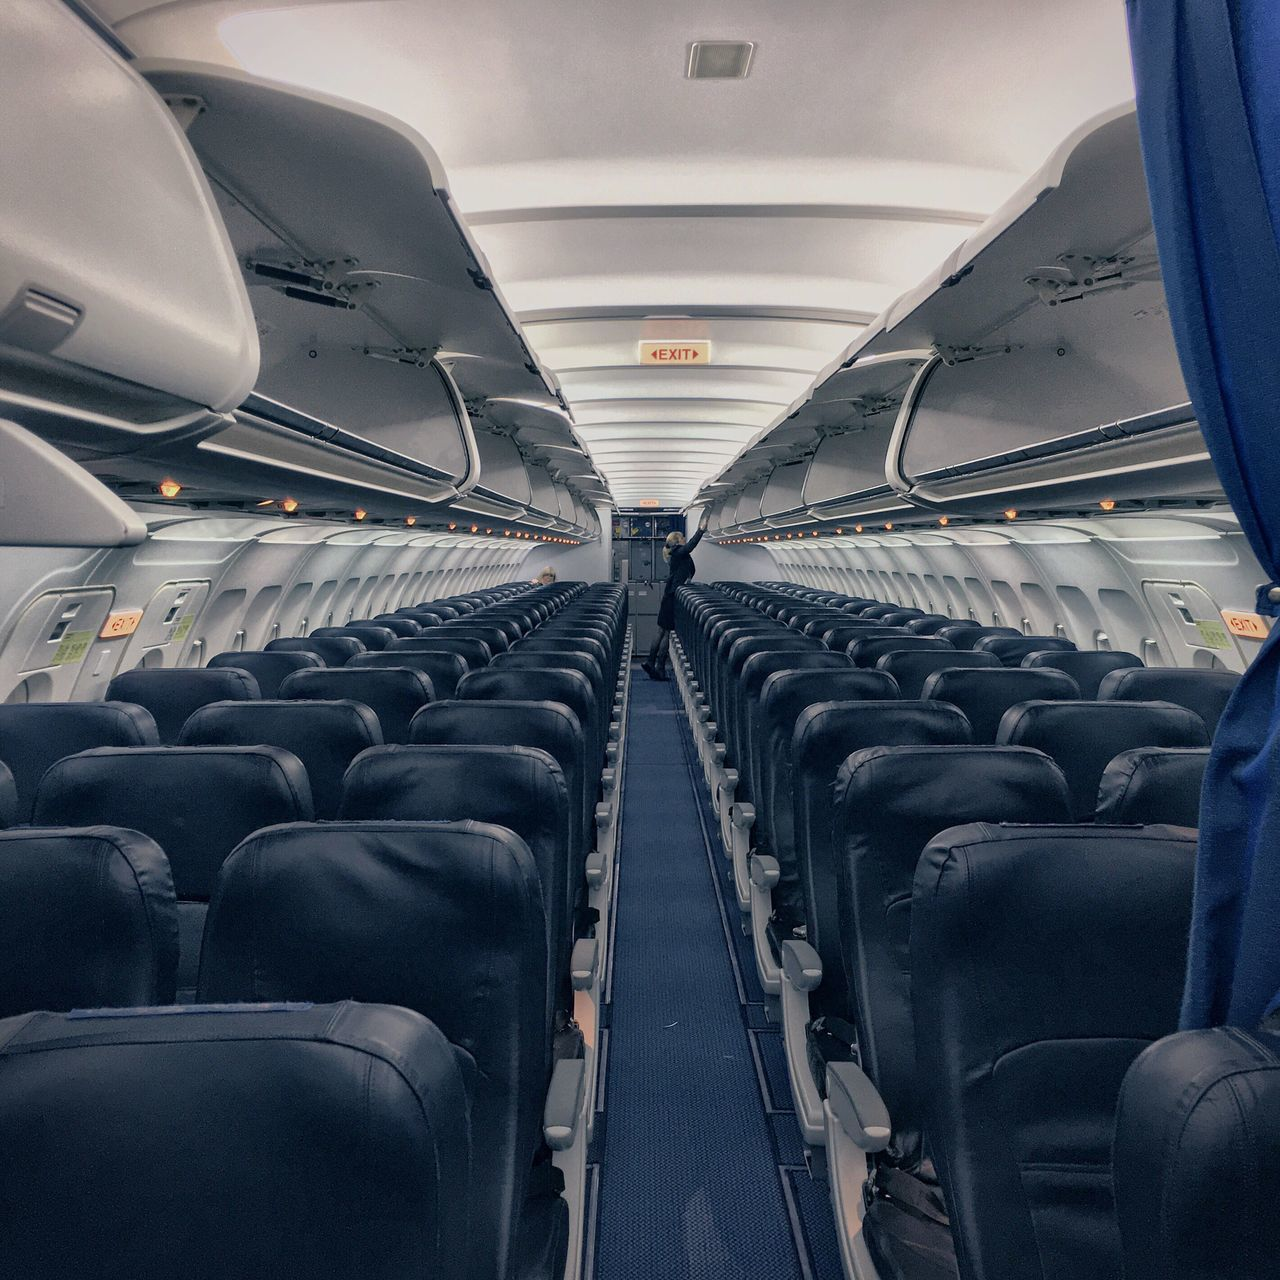 transportation, vehicle interior, vehicle seat, travel, mode of transport, airplane seat, journey, airplane, passenger cabin, public transportation, in a row, seat, indoors, no people, day